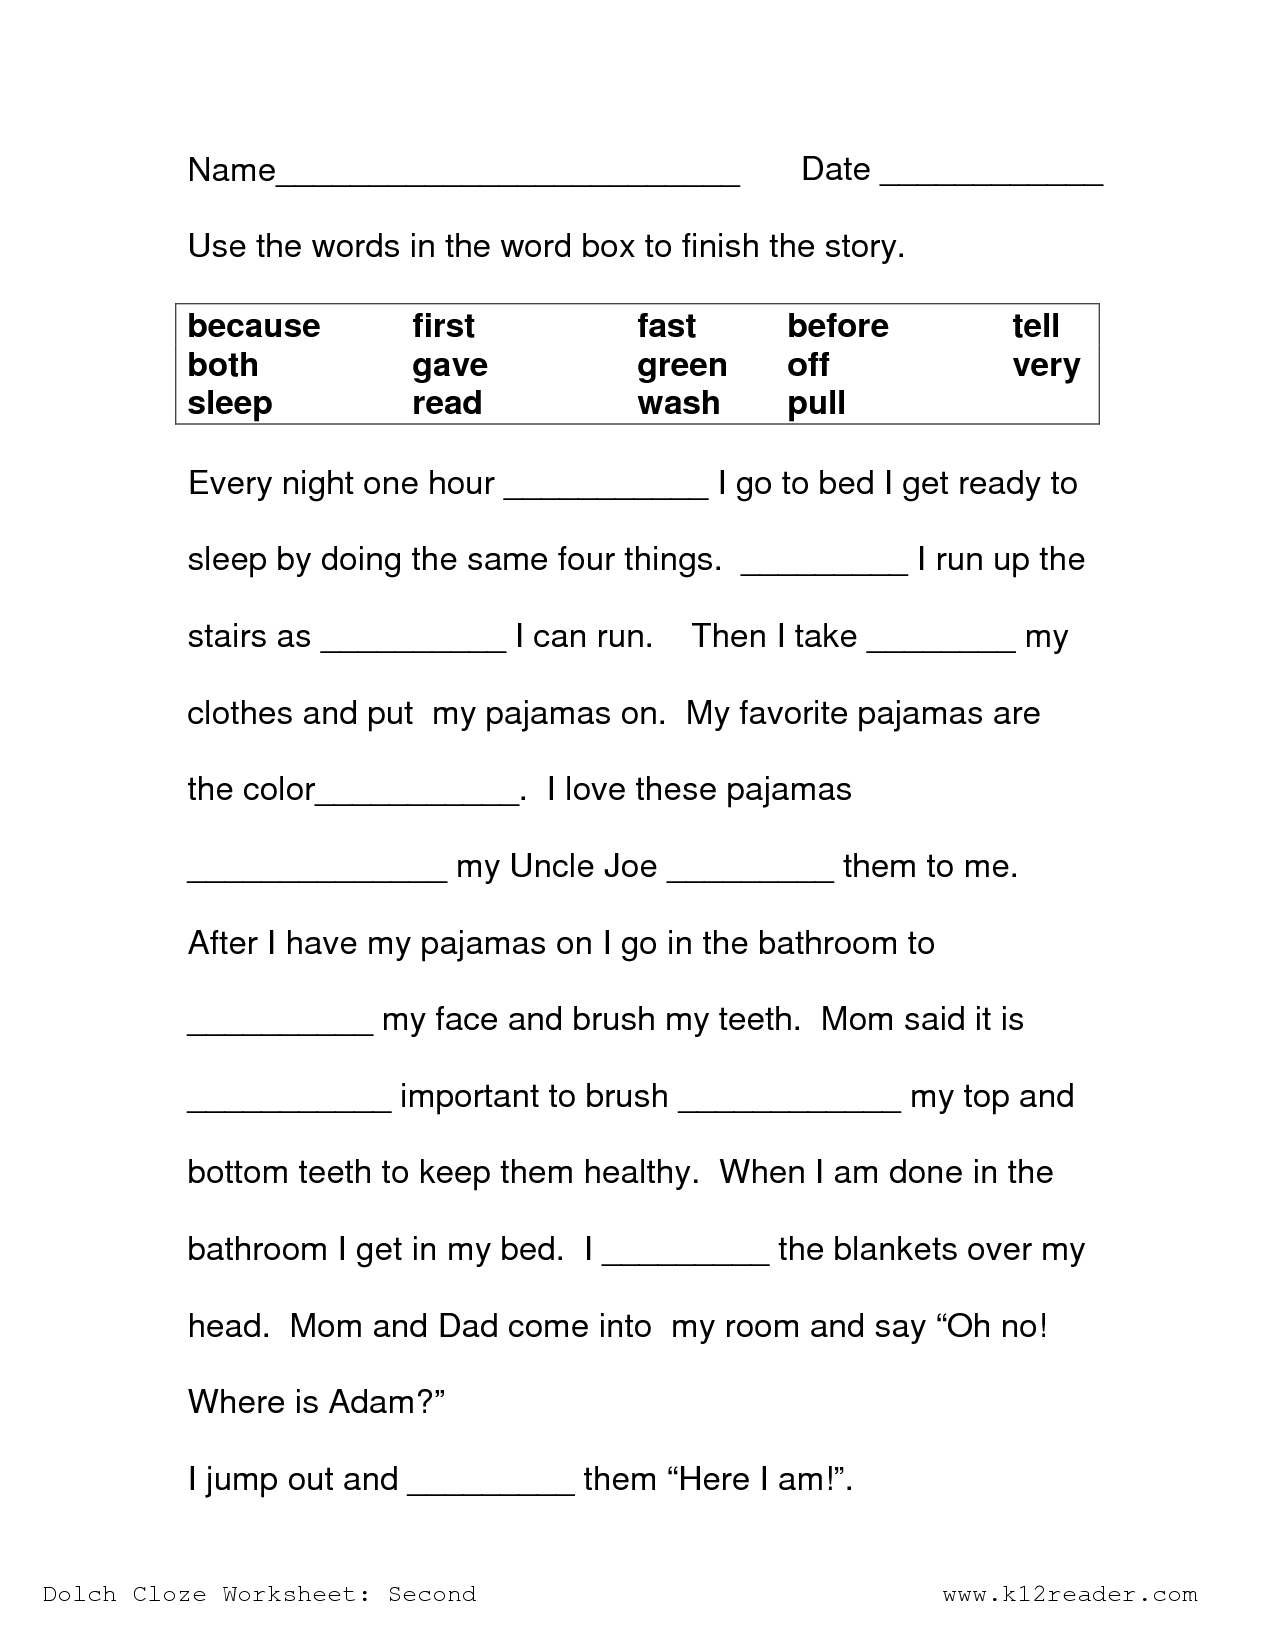 Worksheet 2nd Grade Reading Worksheets Printable reading worksheets 2nd grade pichaglobal k5 related